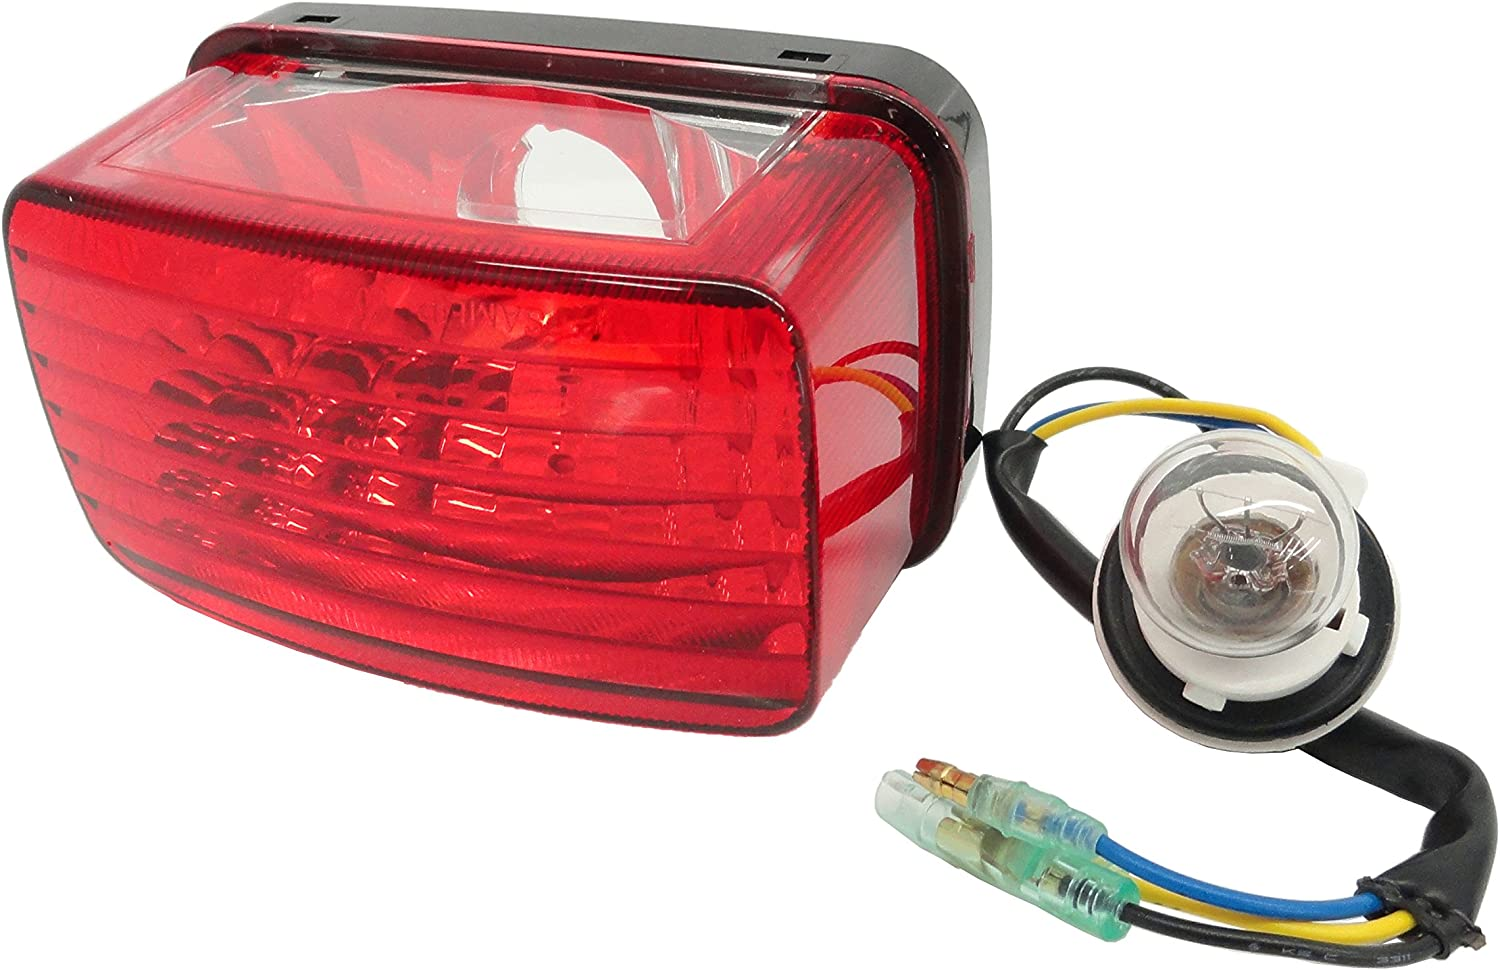 NEW COMPLETE REPLACEMENT TAILLIGHT ASSEMBLY W//BULB FOR 03-06 YAMAHA KODIAK 450